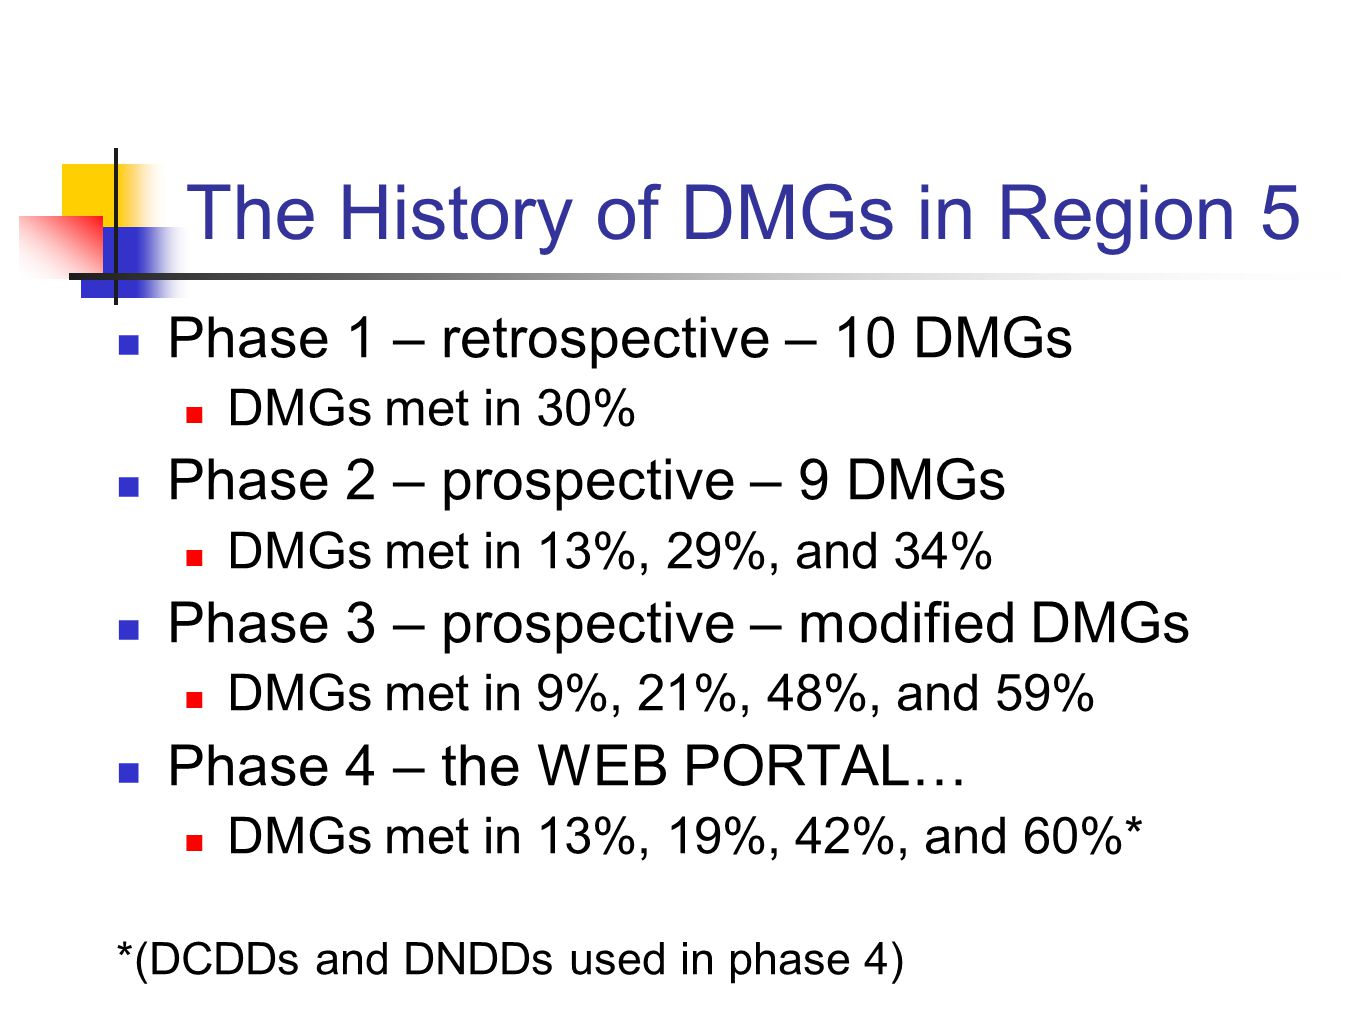 The History of DMGs in Region 5